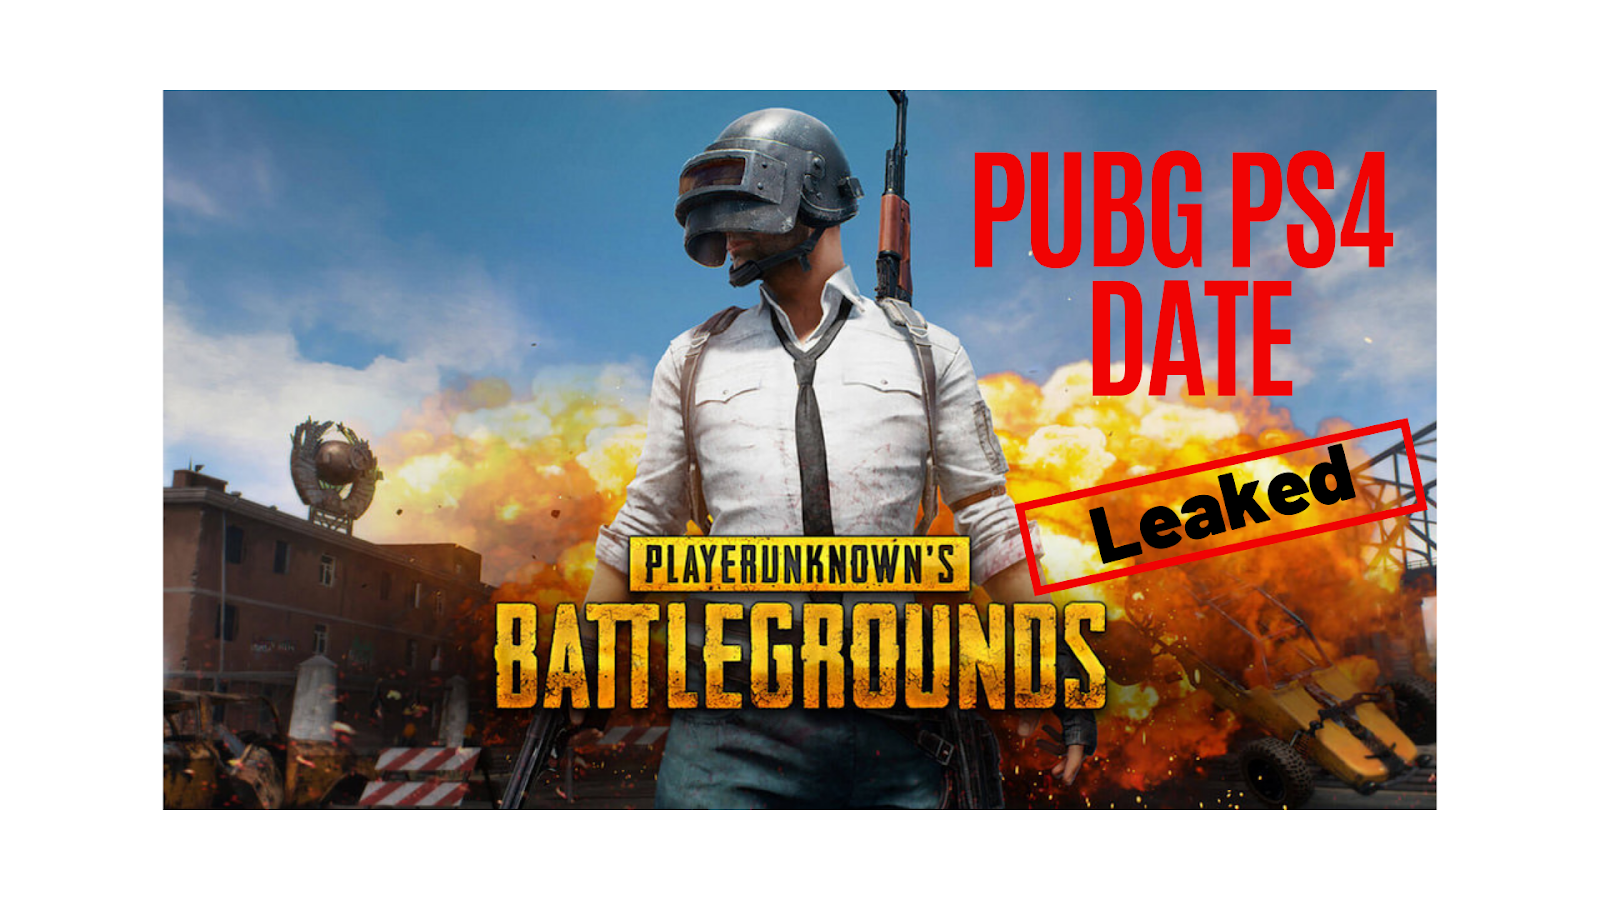 is there pubg for ps4